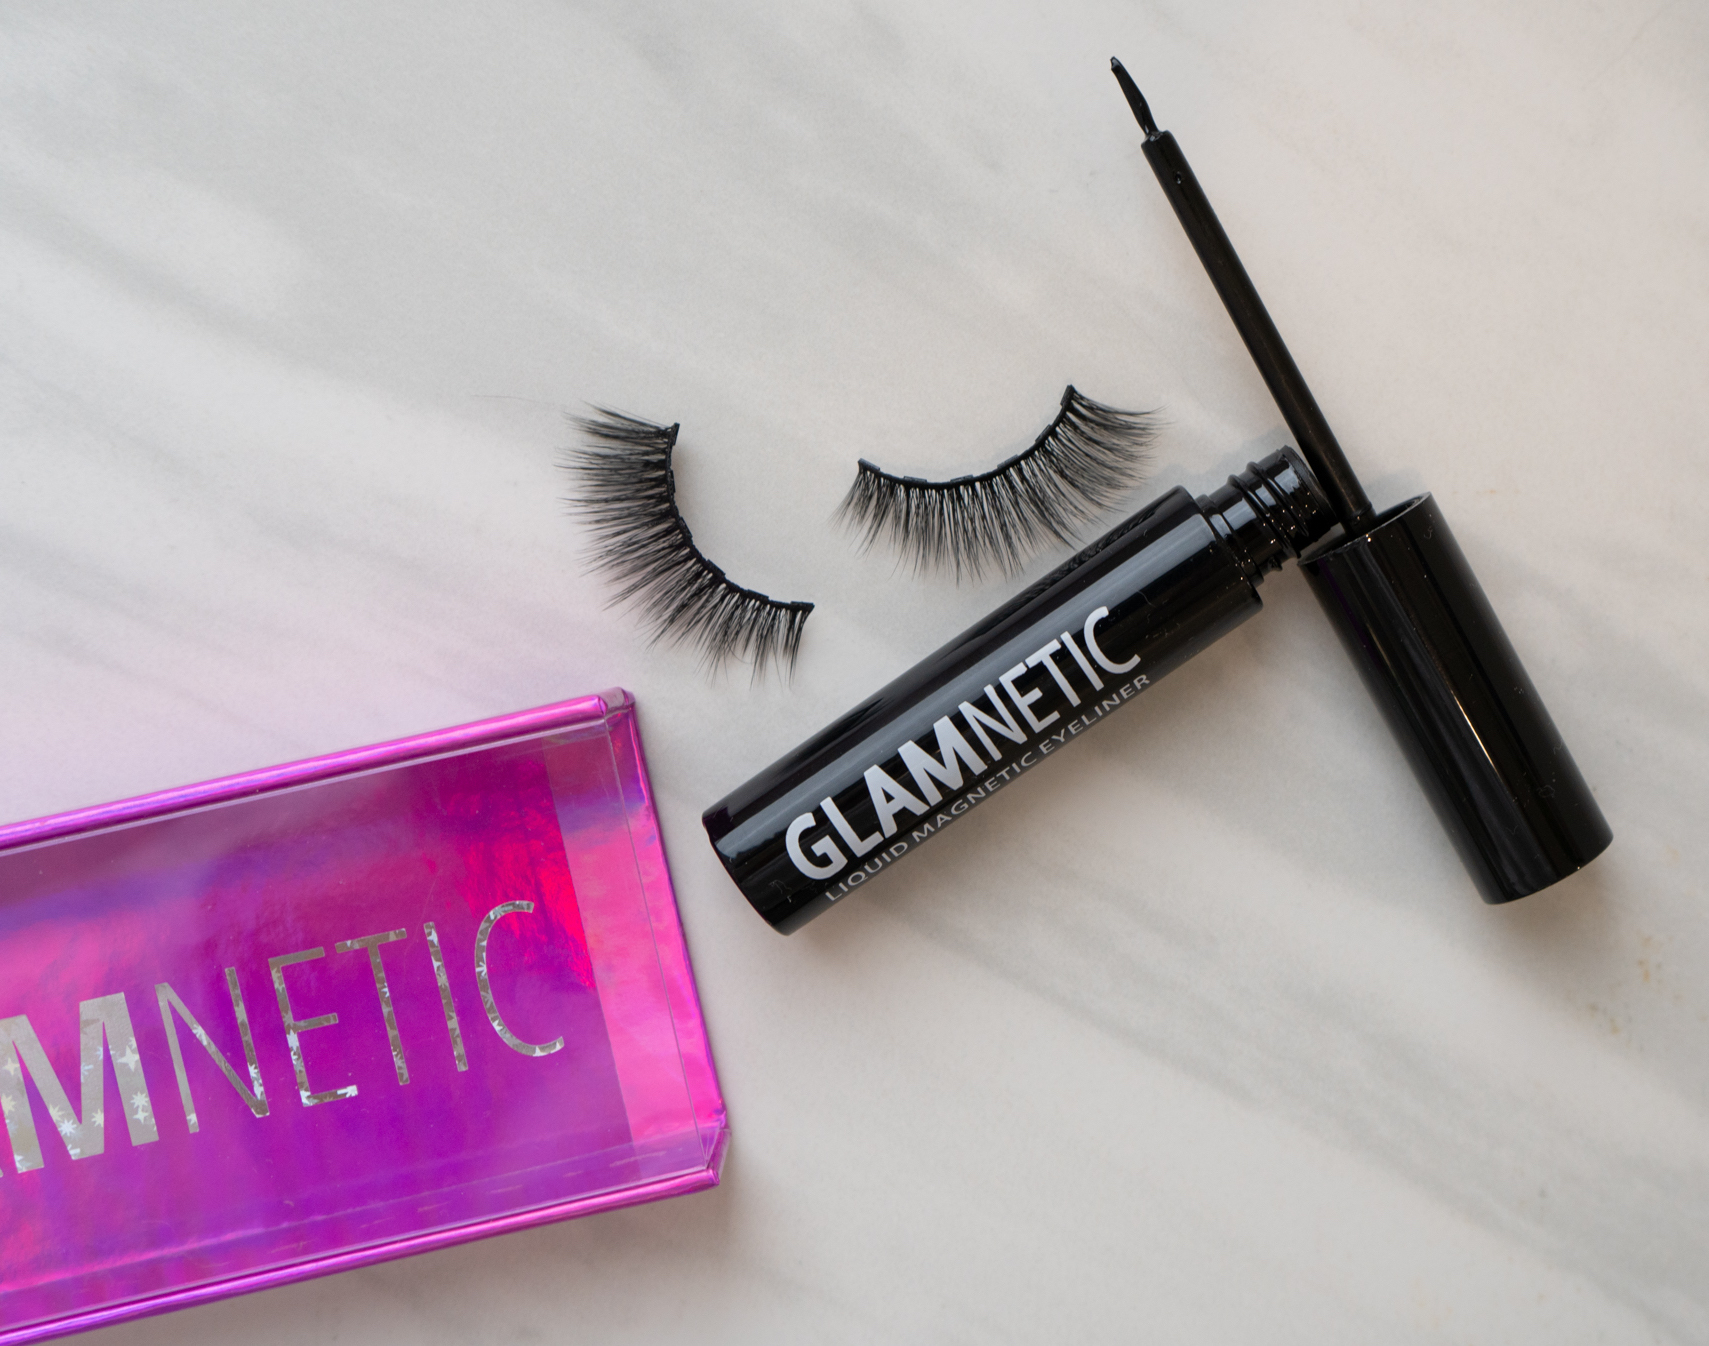 glamnetic magnetic eyelashes in Verified